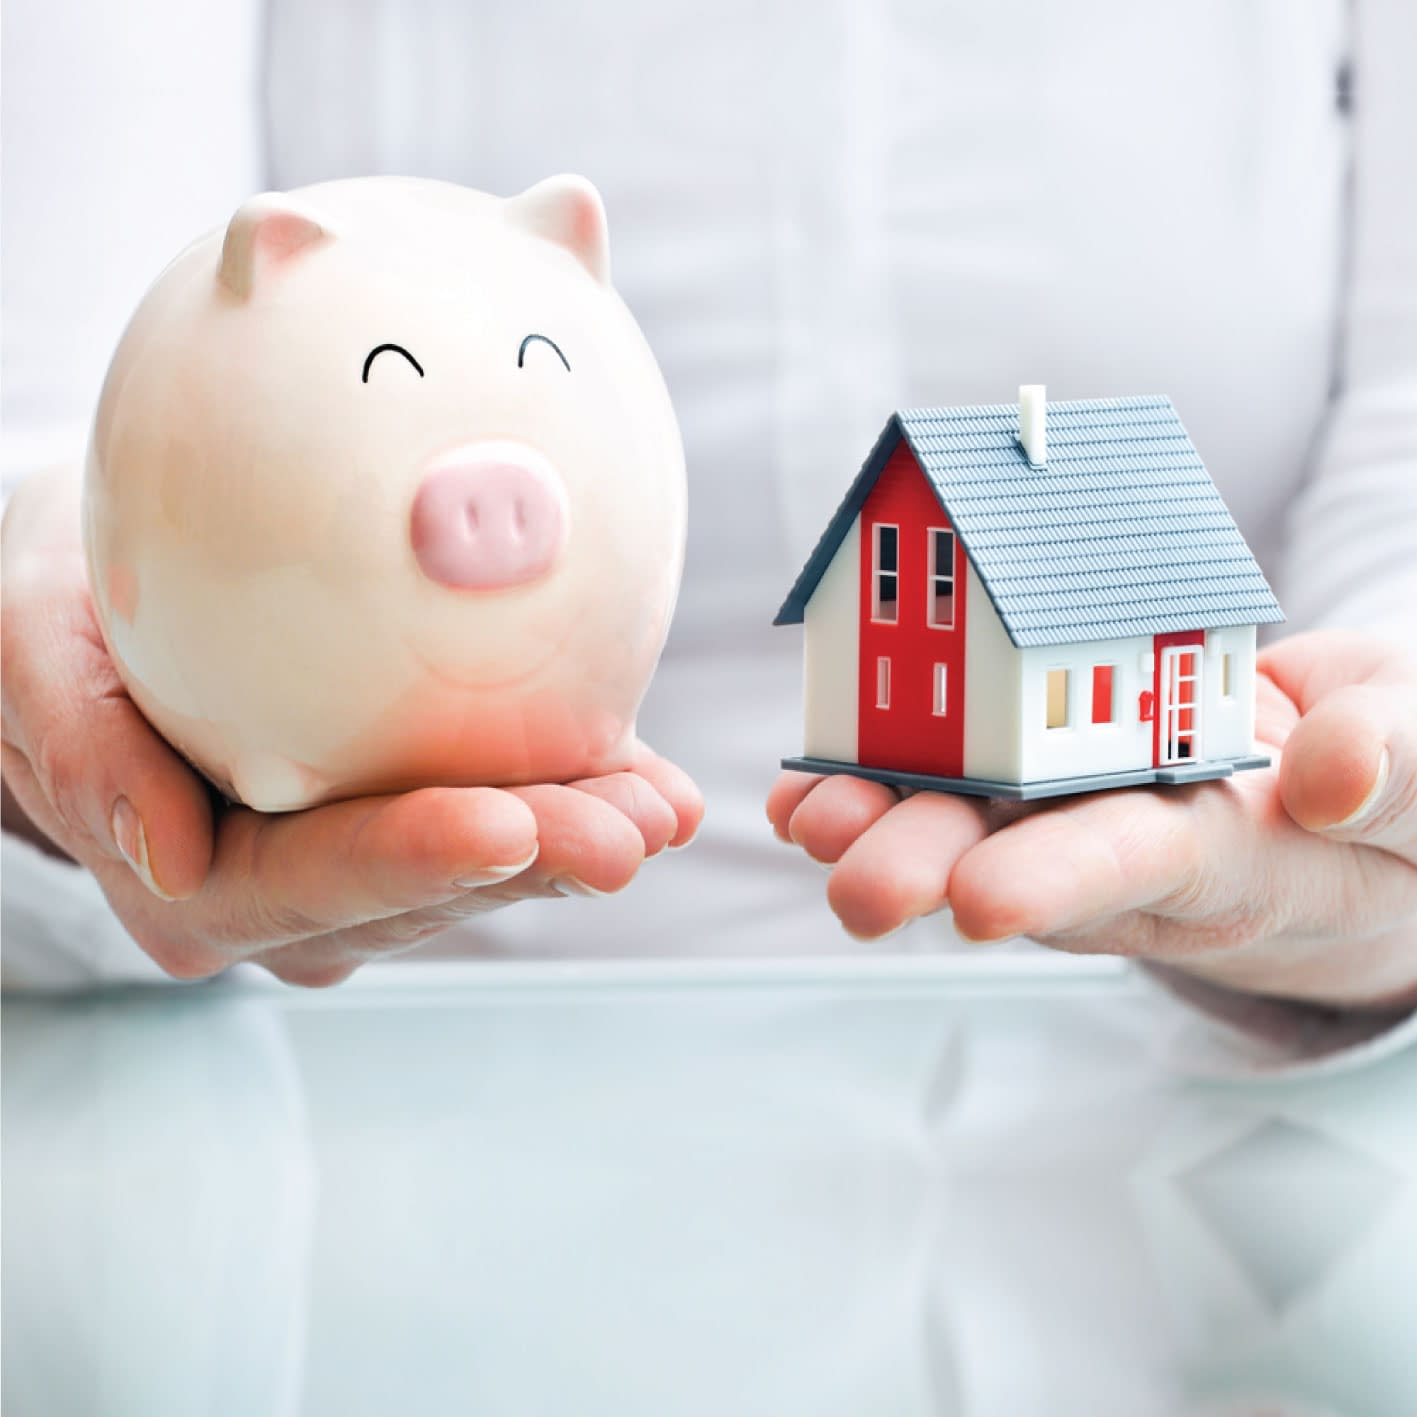 BUY NOW PAY LATER: MORTGAGE PLAN